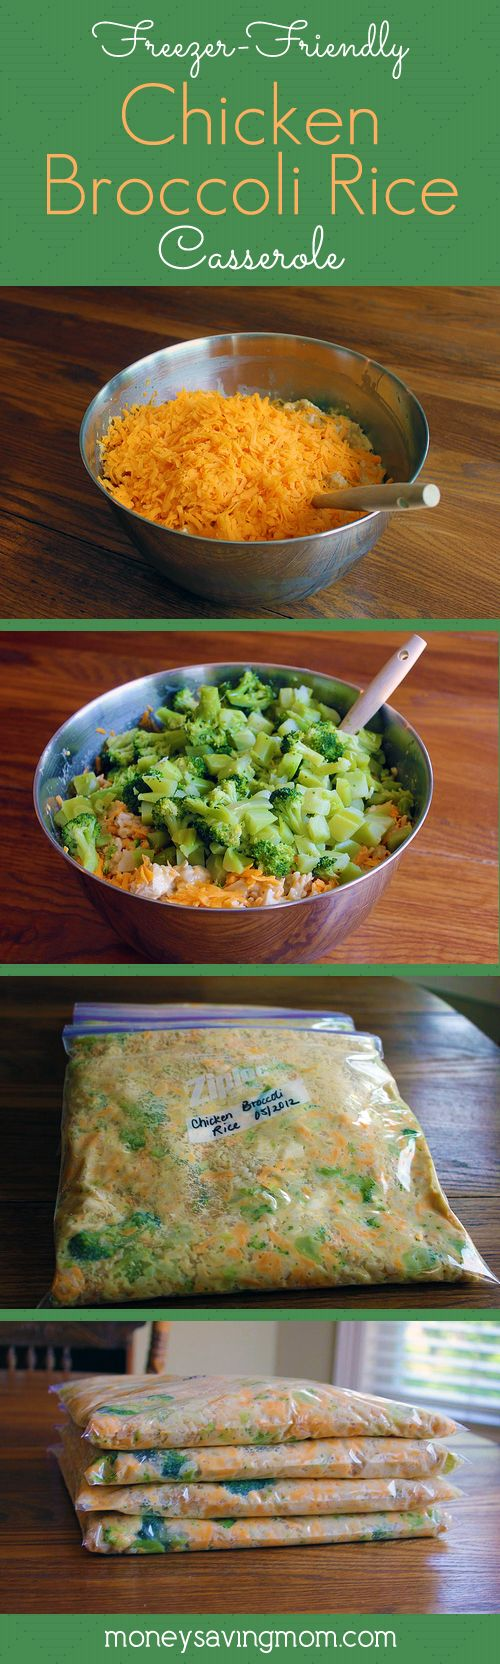 Freezer Friendly Chicken Broccoli Rice Casserole...100's of the BEST Freezer Meals!